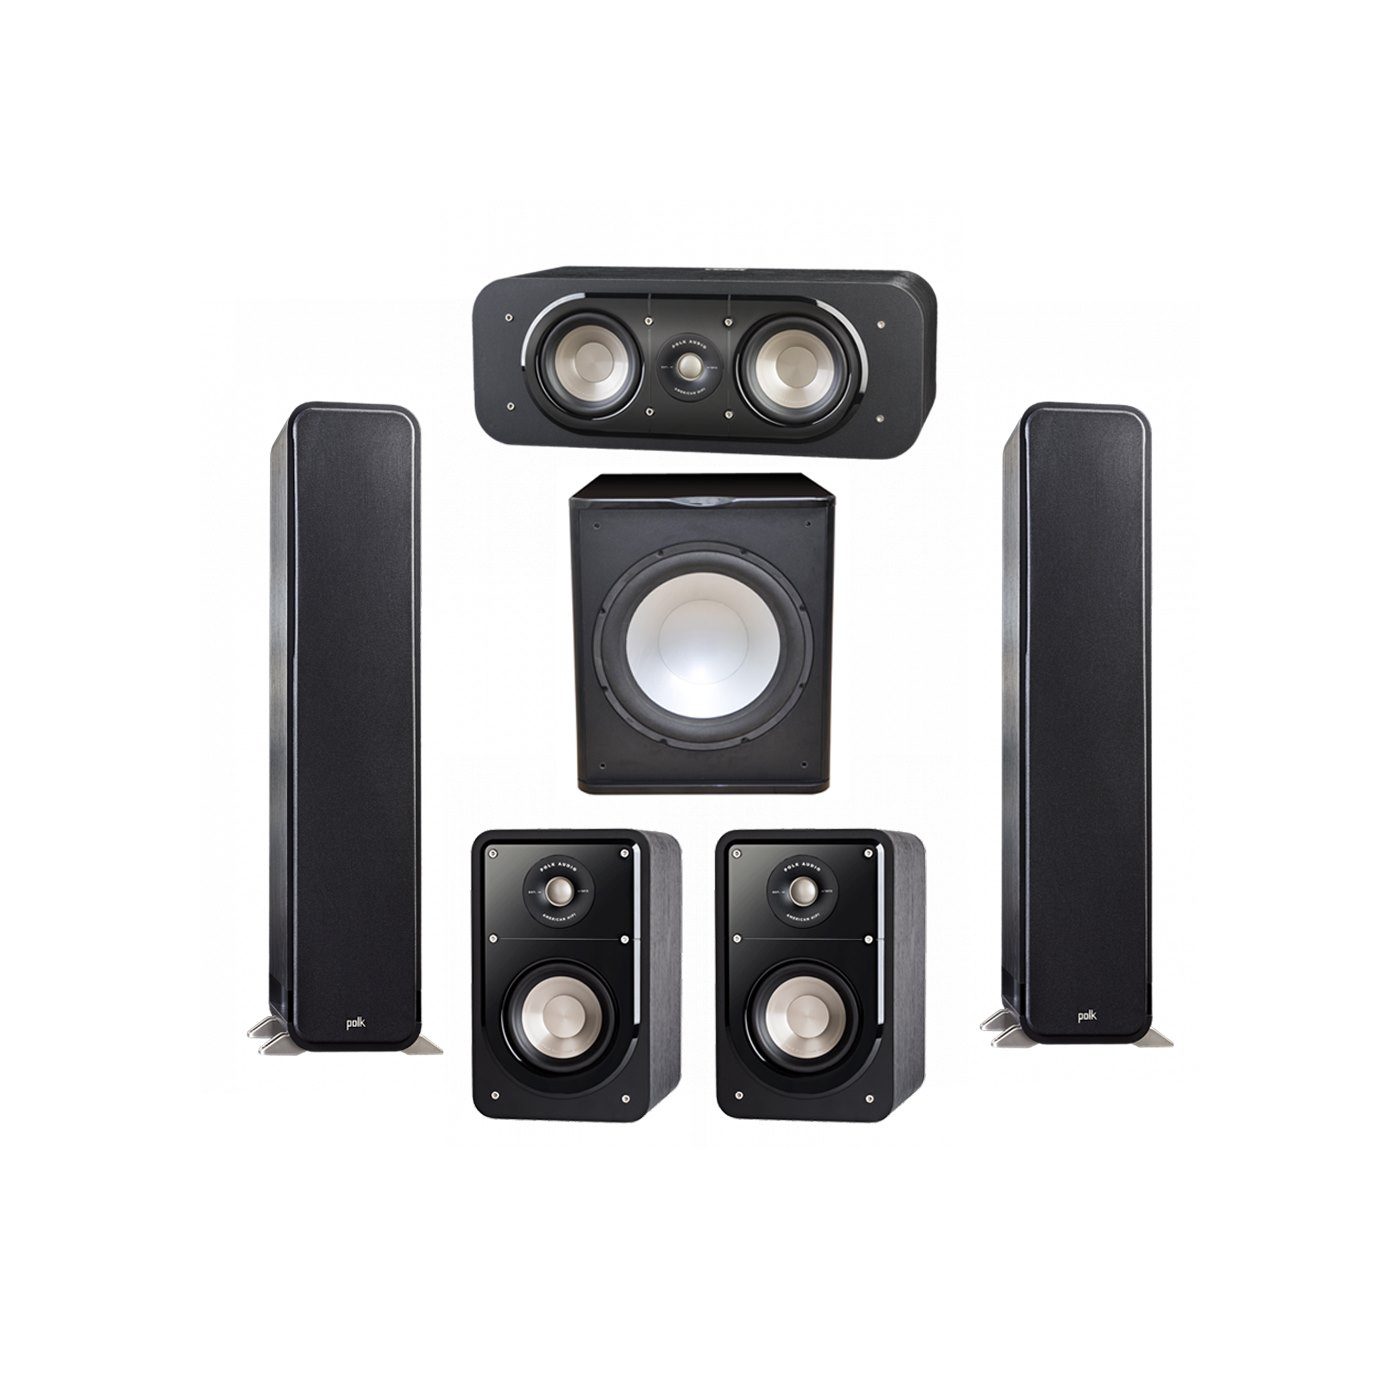 Polk Audio Signature 5.1 System with 2 S55 Tower Speaker, 1 Polk S30 Center Speaker, 2 Polk S15 Bookshelf Speaker, 1 Premier Acoustic PA-150 Powered Subwoofer